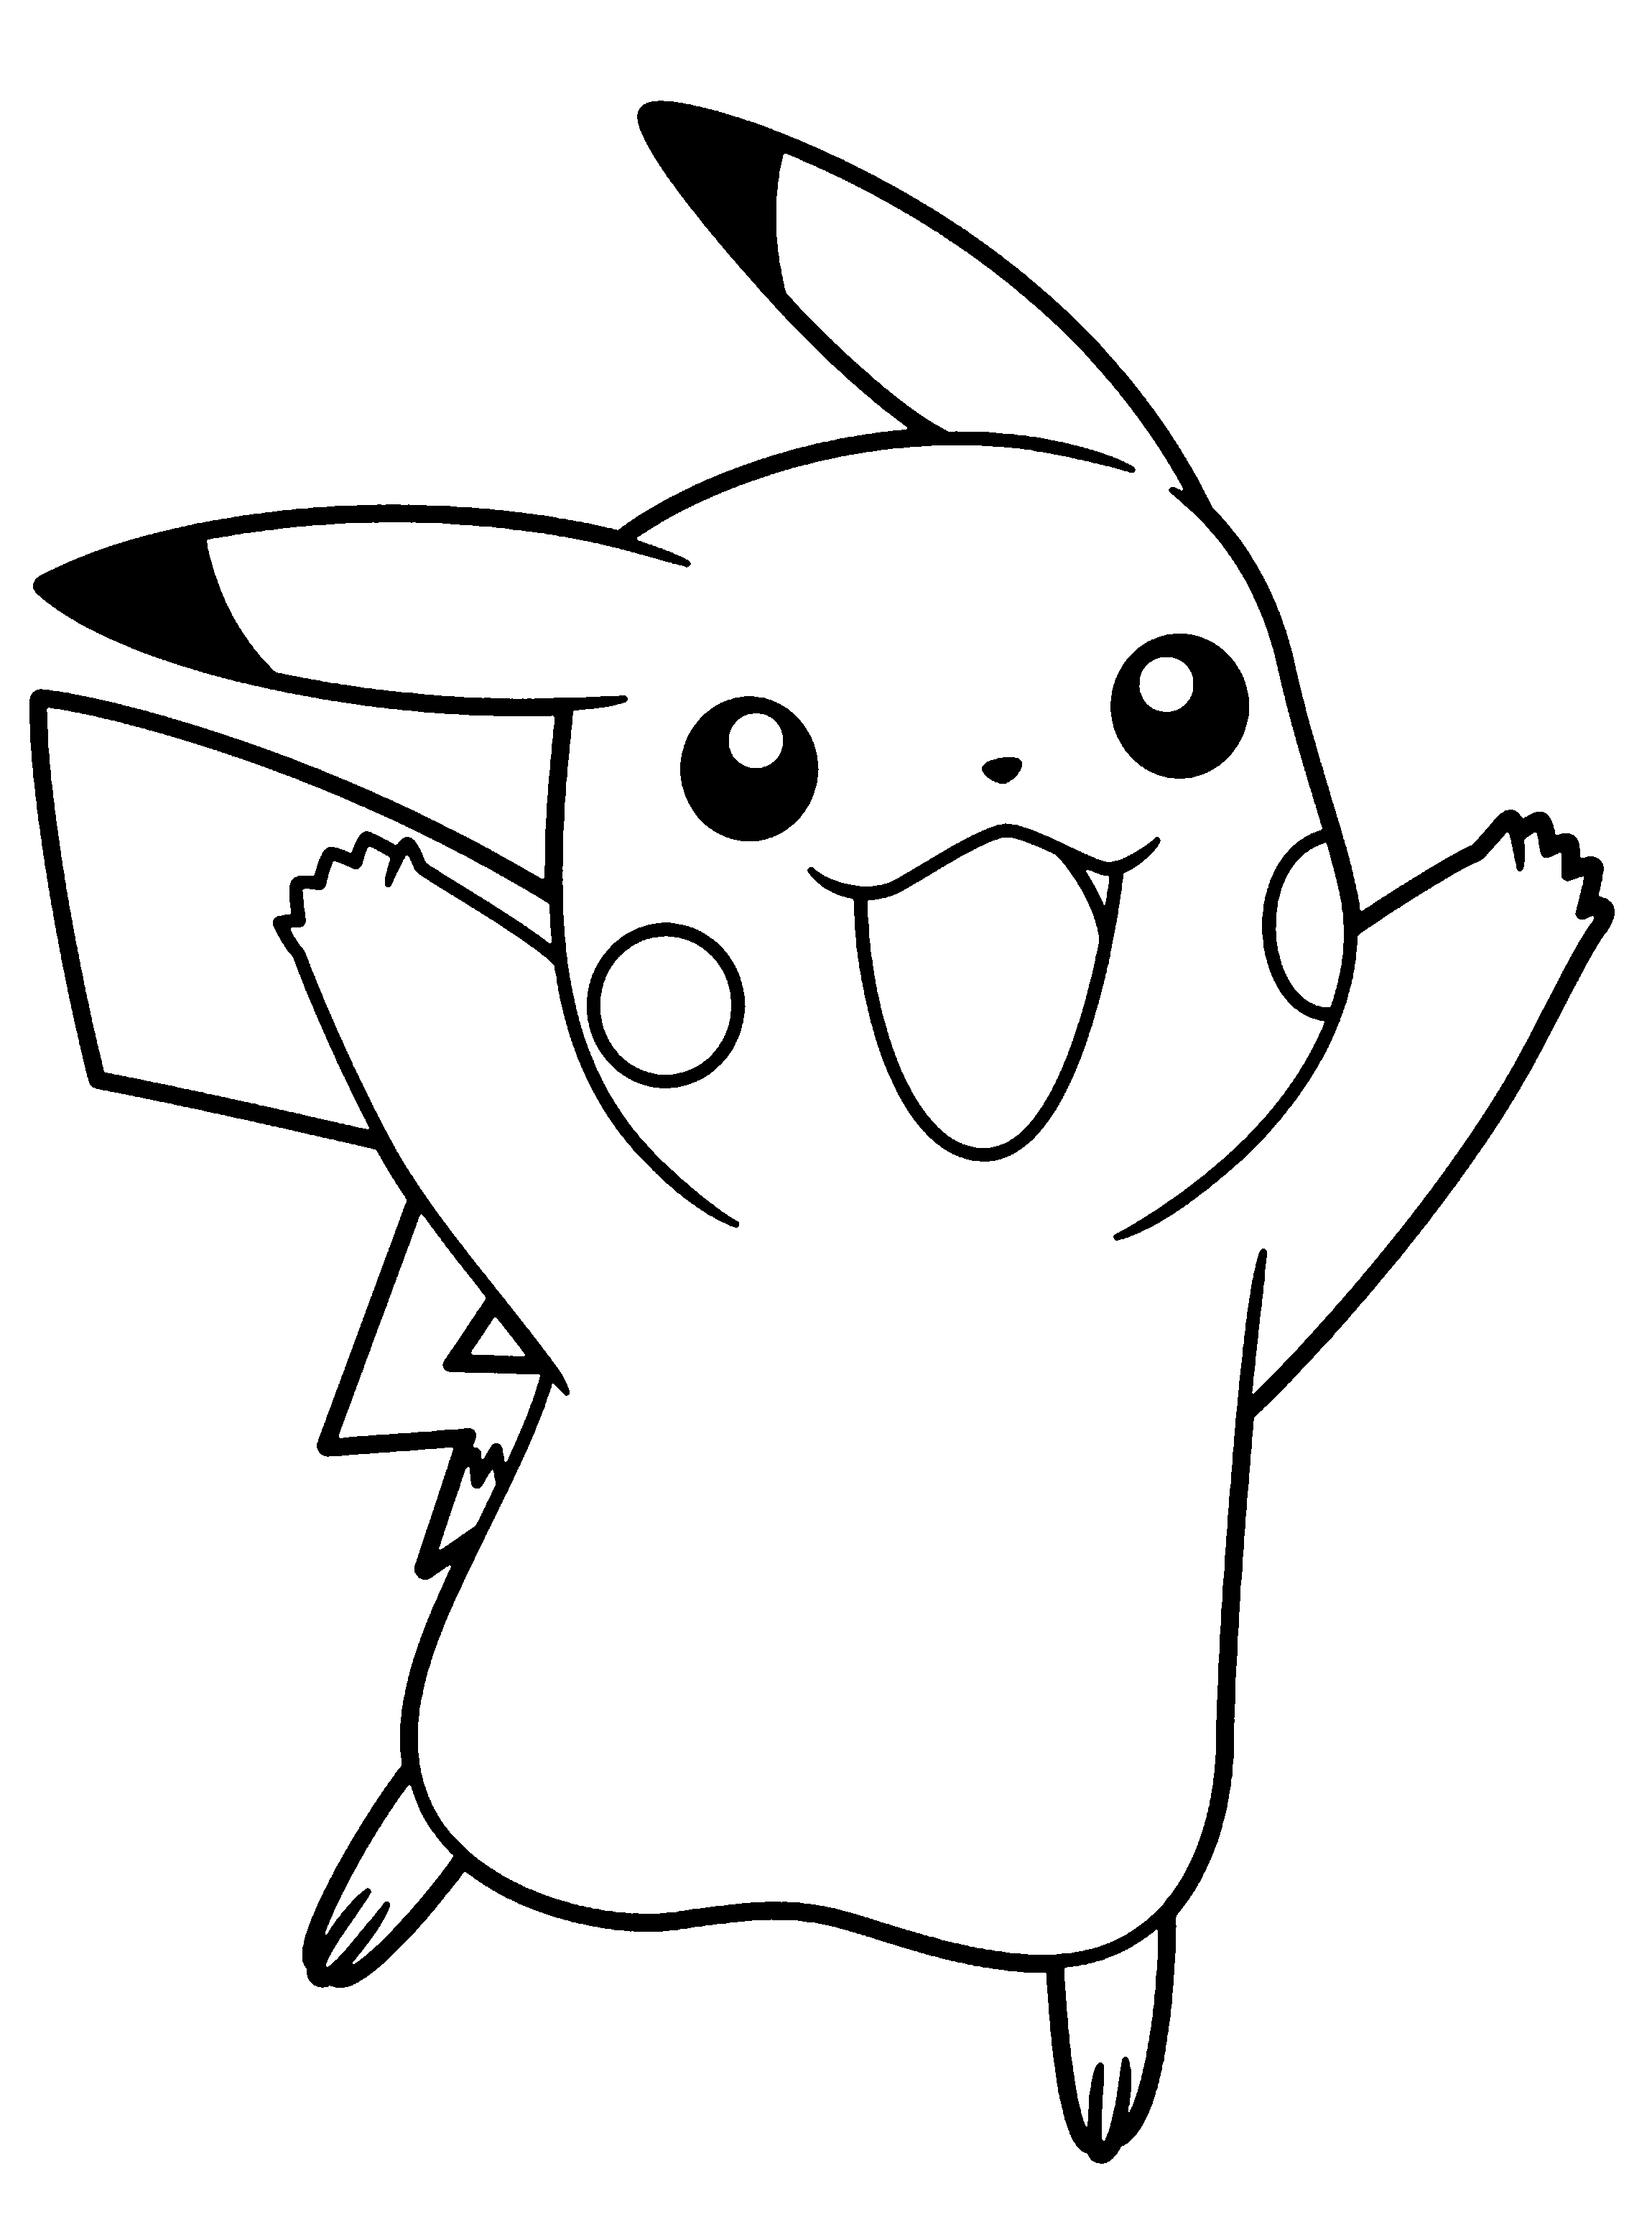 coloring pictures pikachu 30 best pikachu coloring pages visual arts ideas pikachu coloring pictures